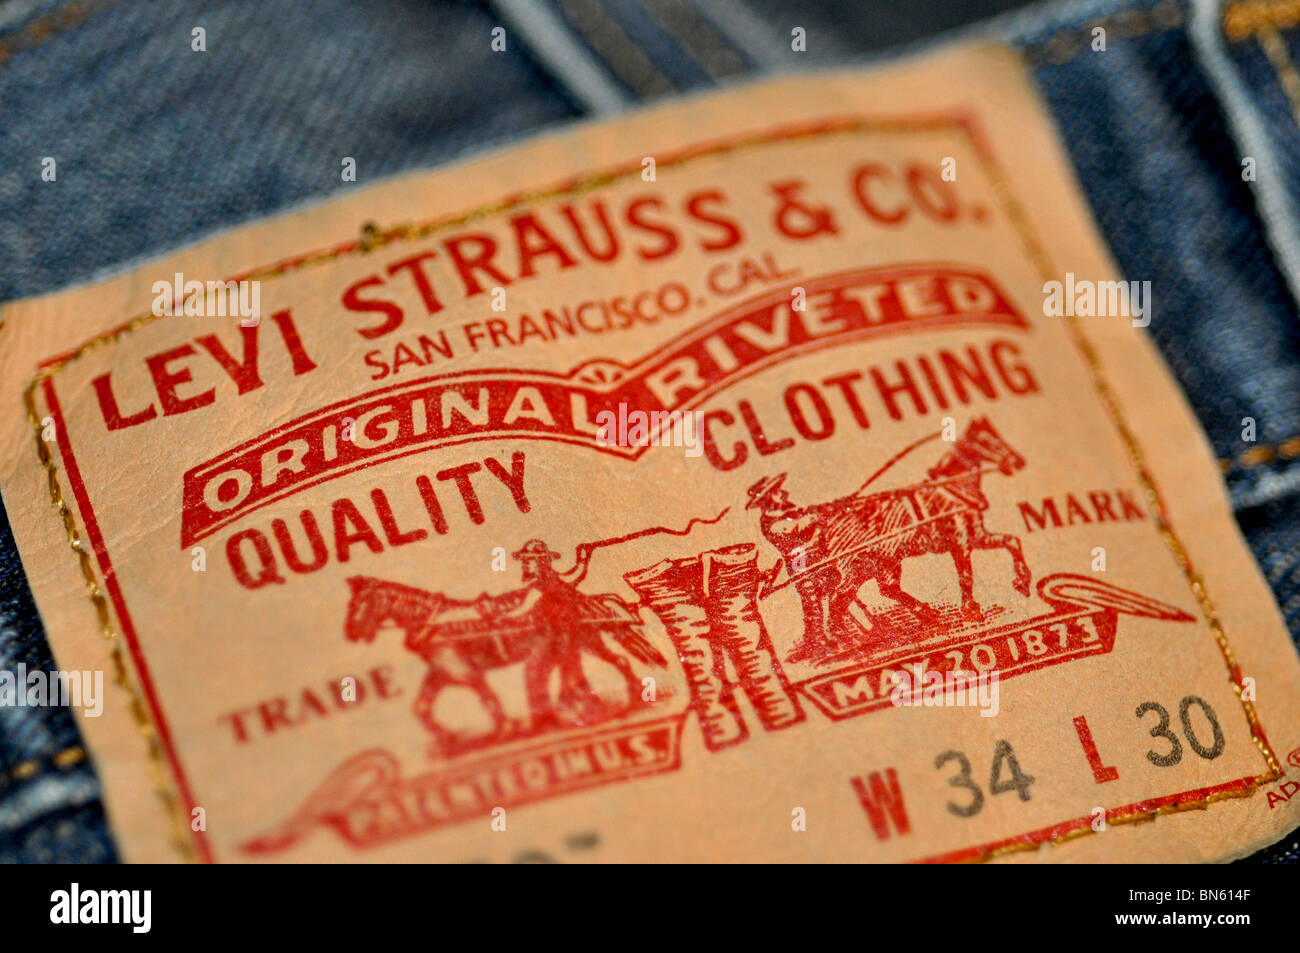 dating levis tags Levi strauss (1829-1902) immigrated to the united states from bavaria in 1847 he worked in the family's dry goods business in new york until 1853.